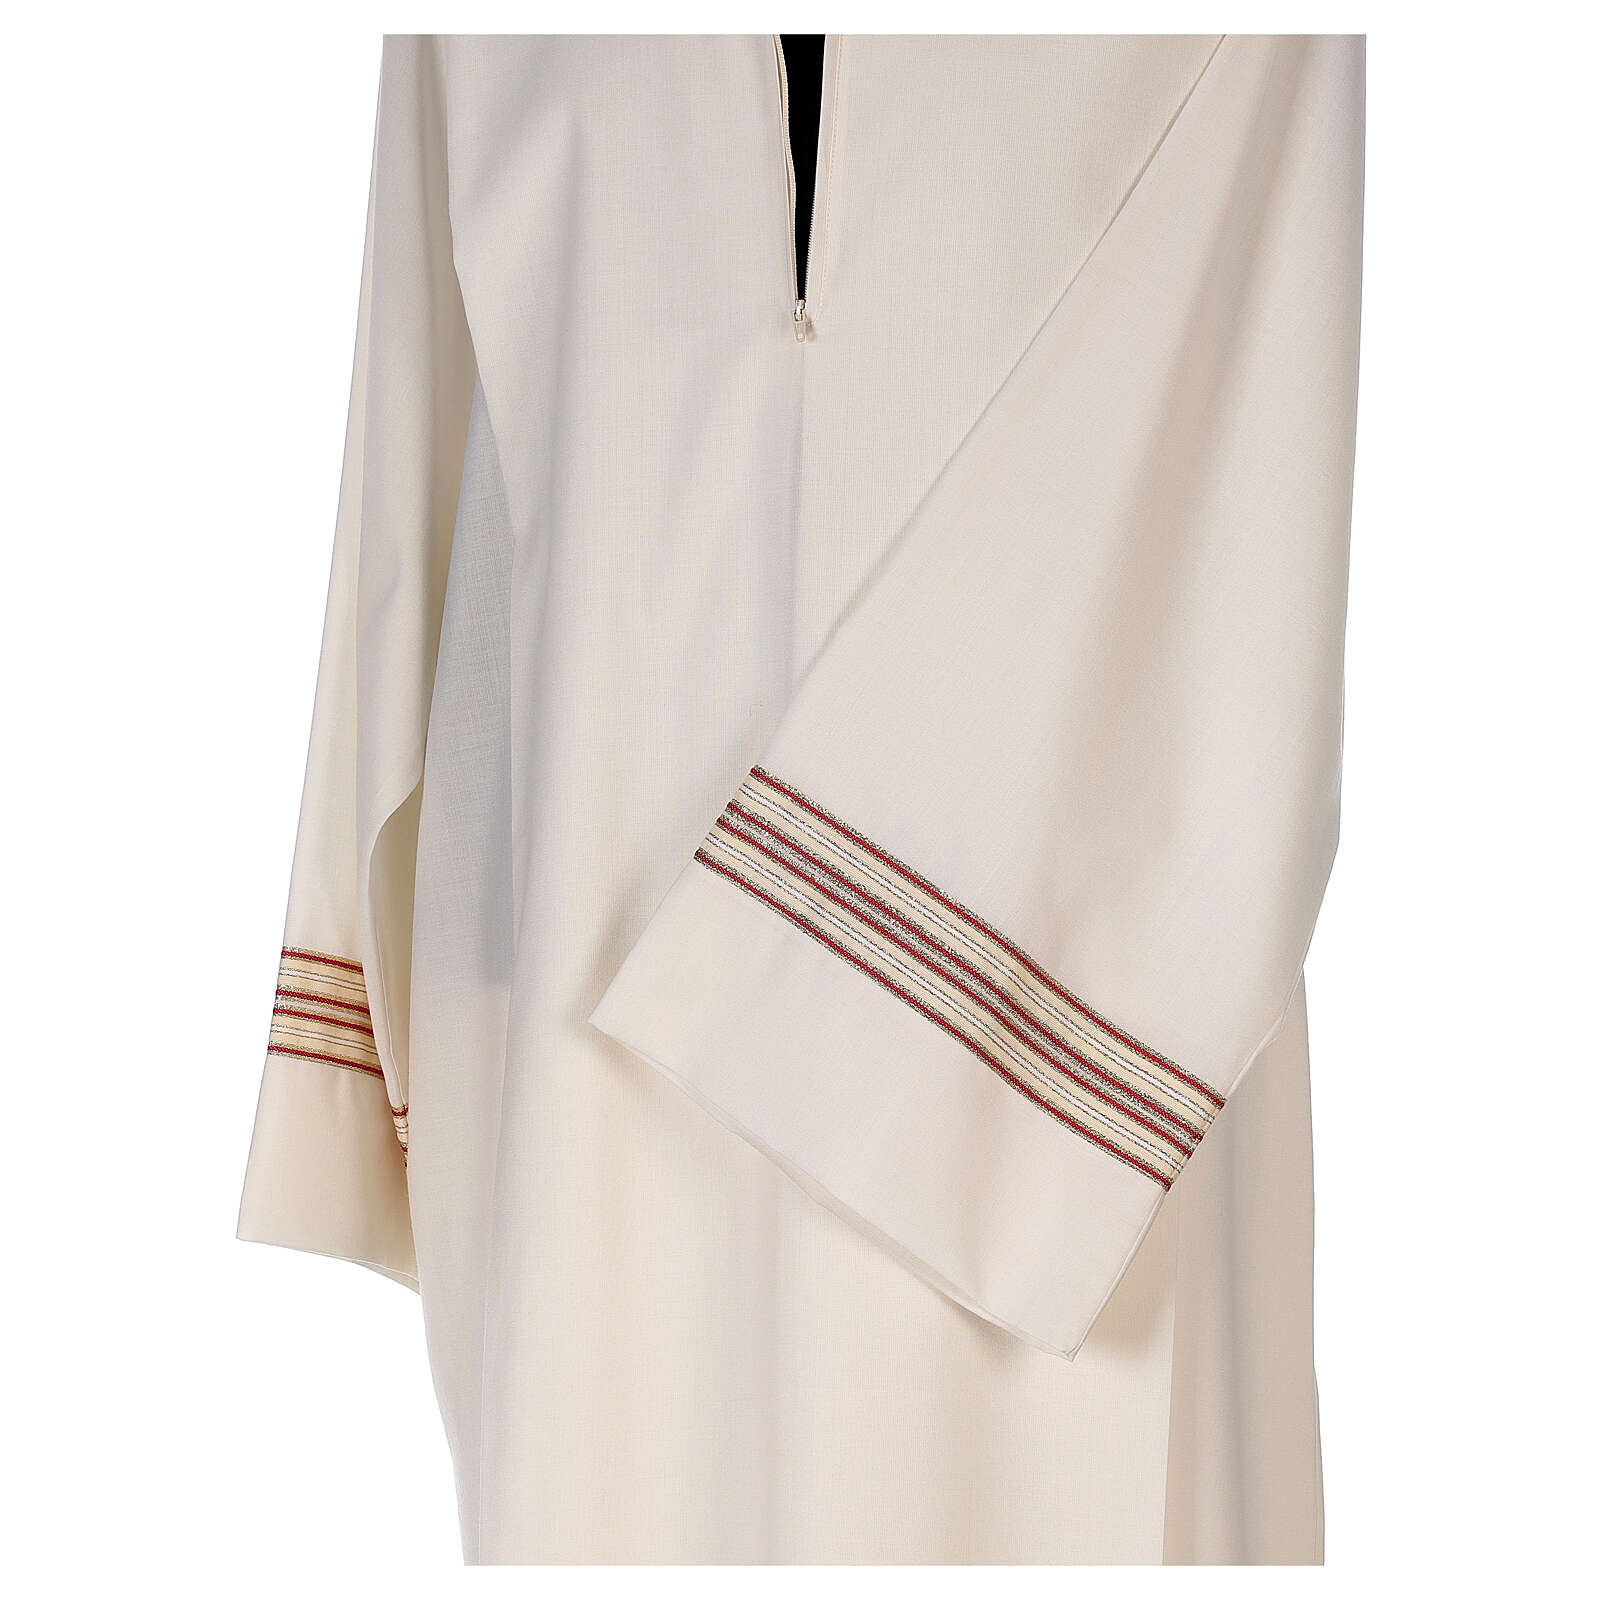 Priest alb 55% polyester 45% wool striped gold red 4